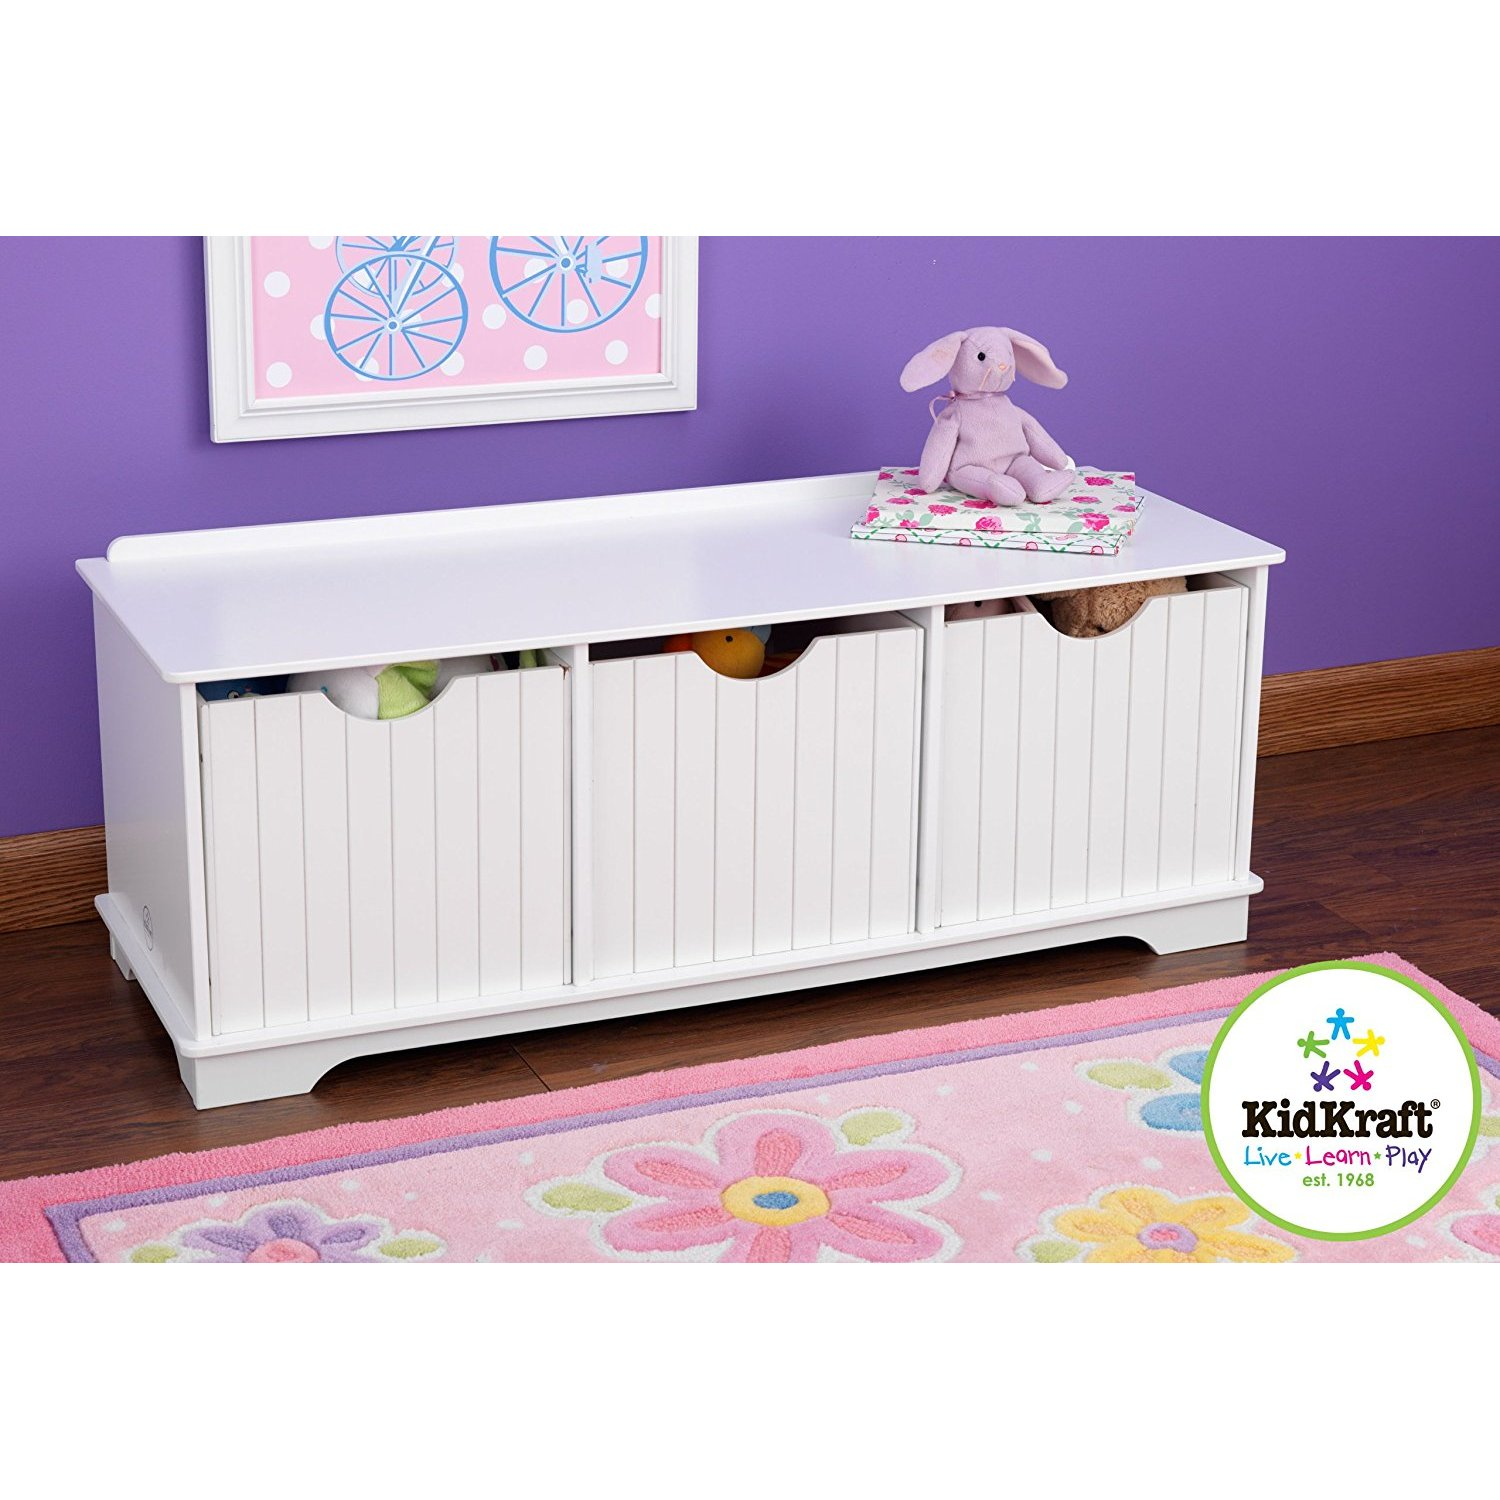 Children Cabinets KidKraft  Bench With Drawers For Storage, White Children's Furniture For Kids Toy Rack Storage System Toy Box Dresser Toy Cabinet